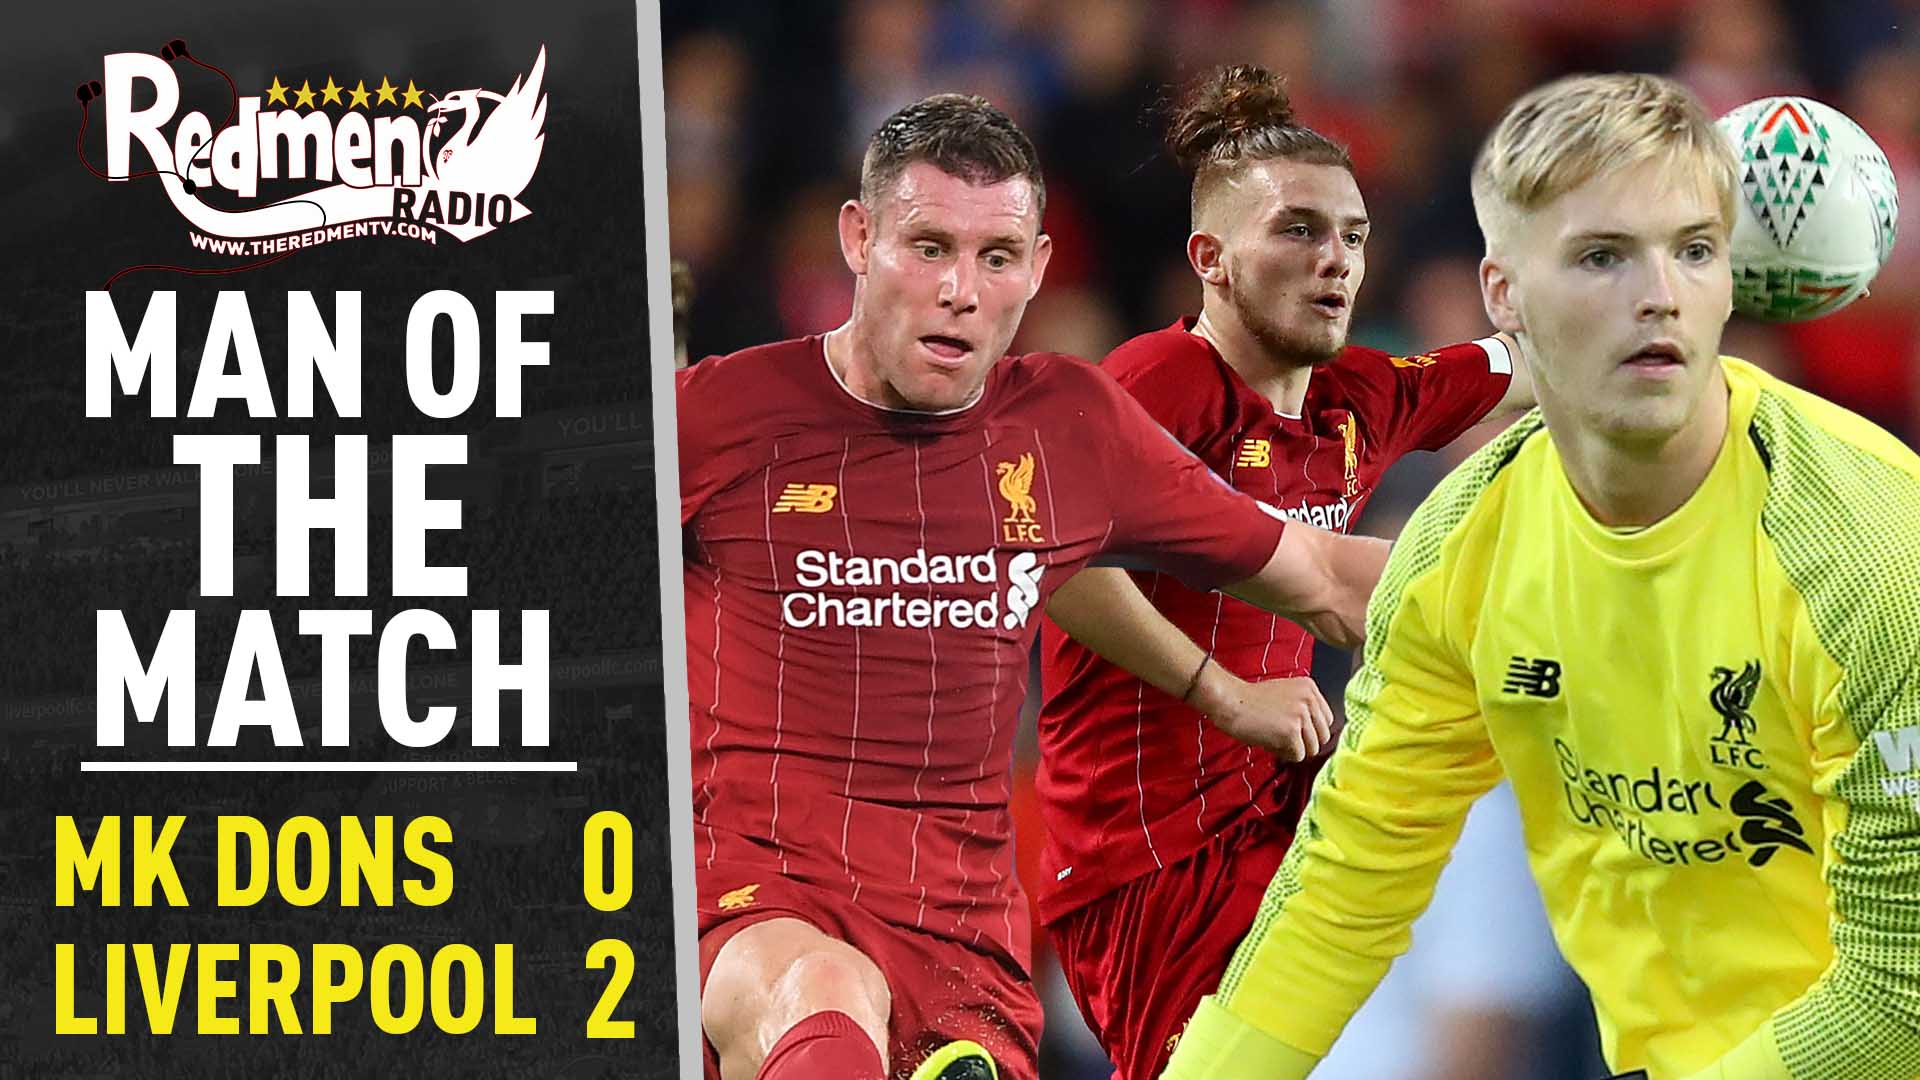 MK Dons 0-2 Liverpool | Man of the Match Podcast - The Redmen TV